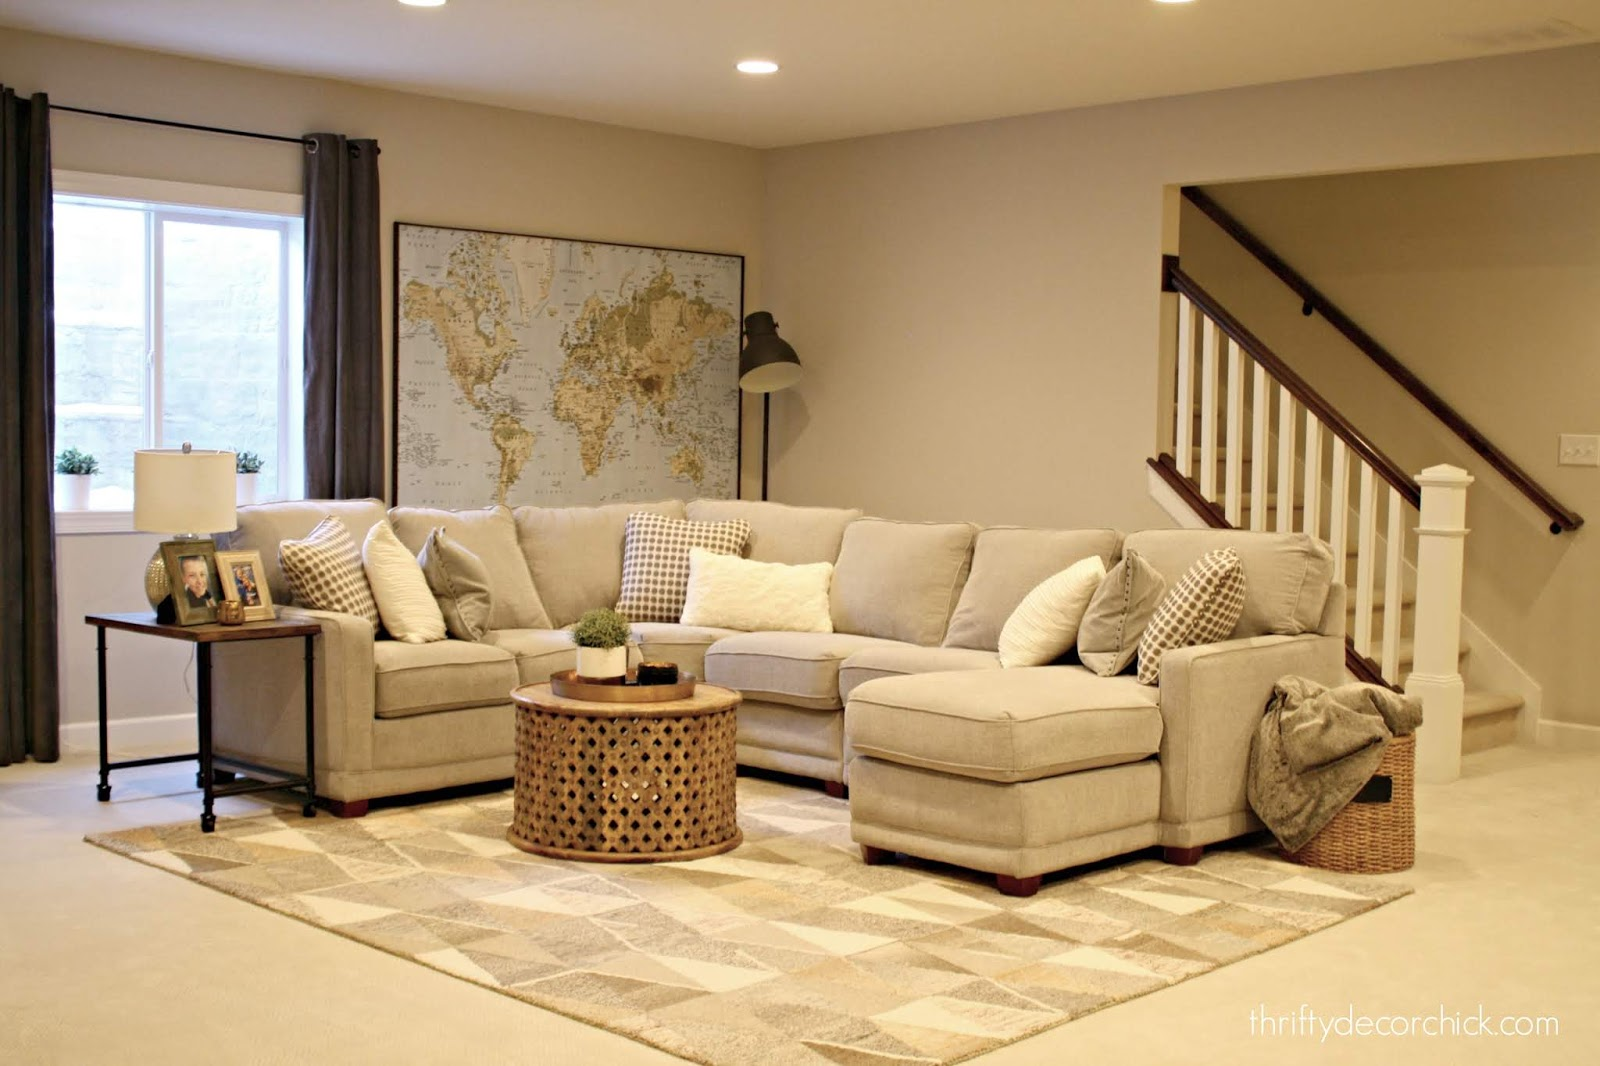 Basement family room with sectional